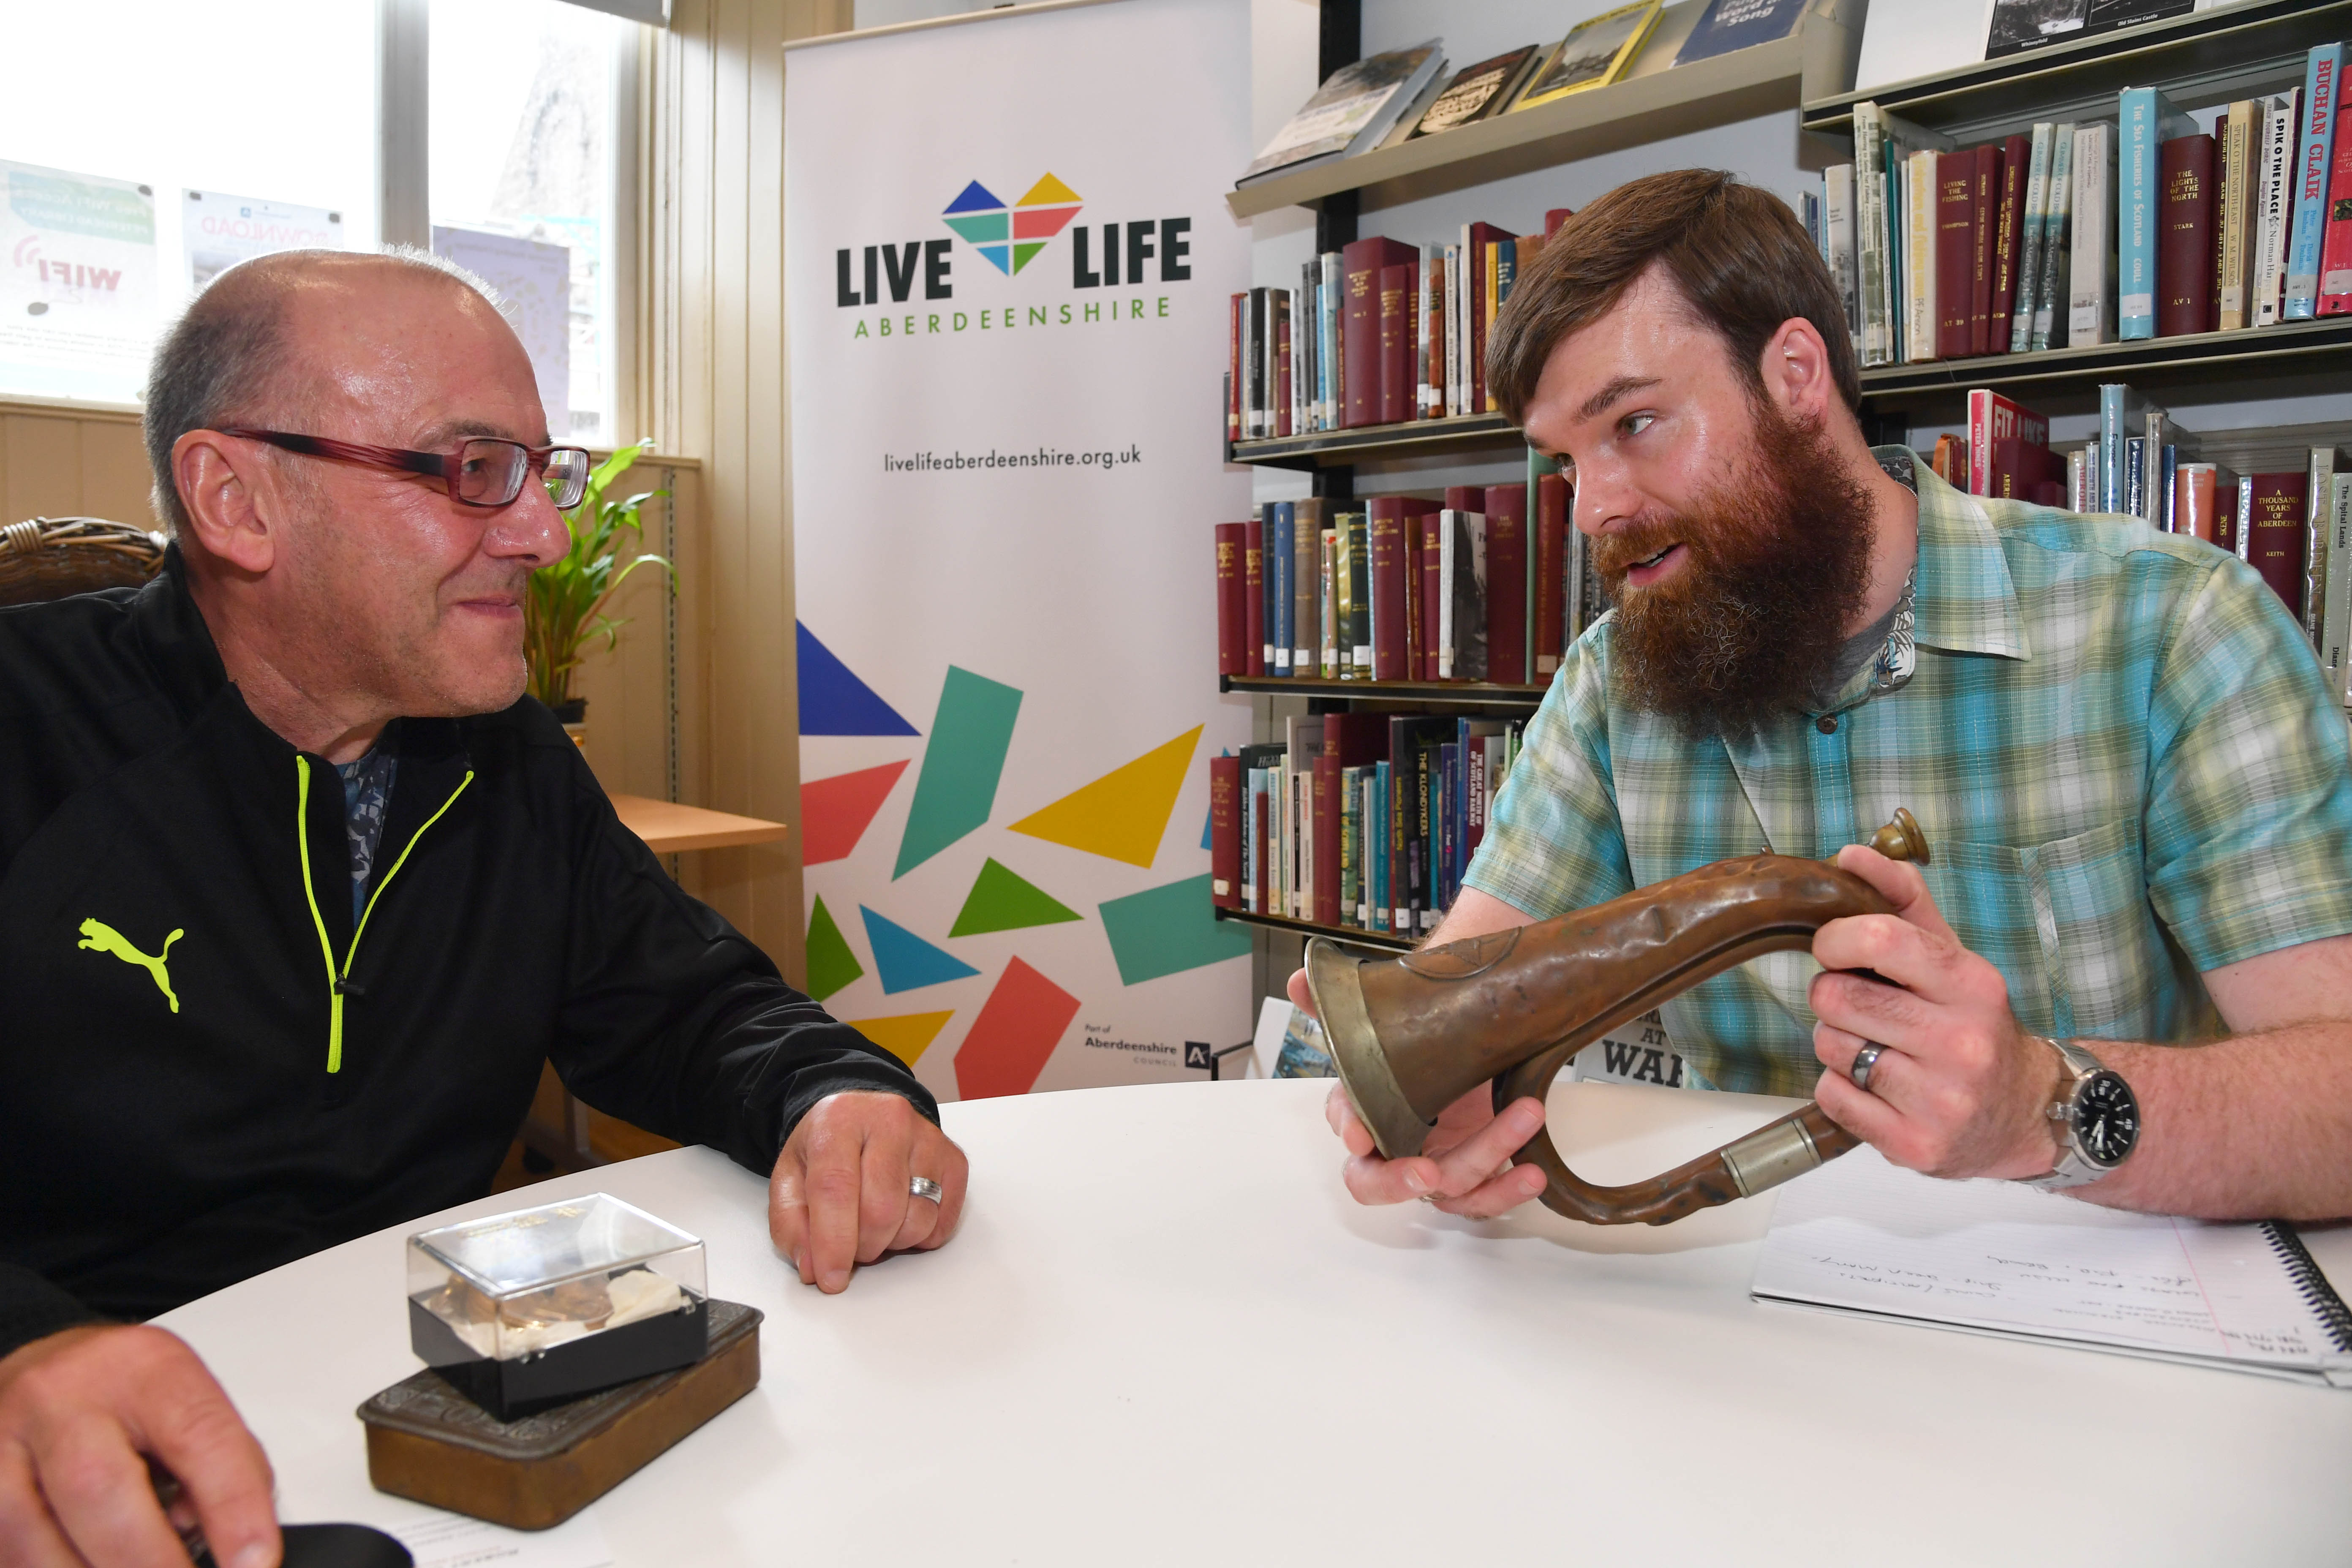 PETERHEAD SCOITTISH WEEK ROBERT COOK FROM ATTIC ANTIQUES EXAMINES A WORLD WAR 1 GERMAN SIGNAL HORN  BELONGING TO RICHARD FRASER WHOSE GREAT GRANDFATHER BROUGHT  IT HOME FROM THE TRENCHES.